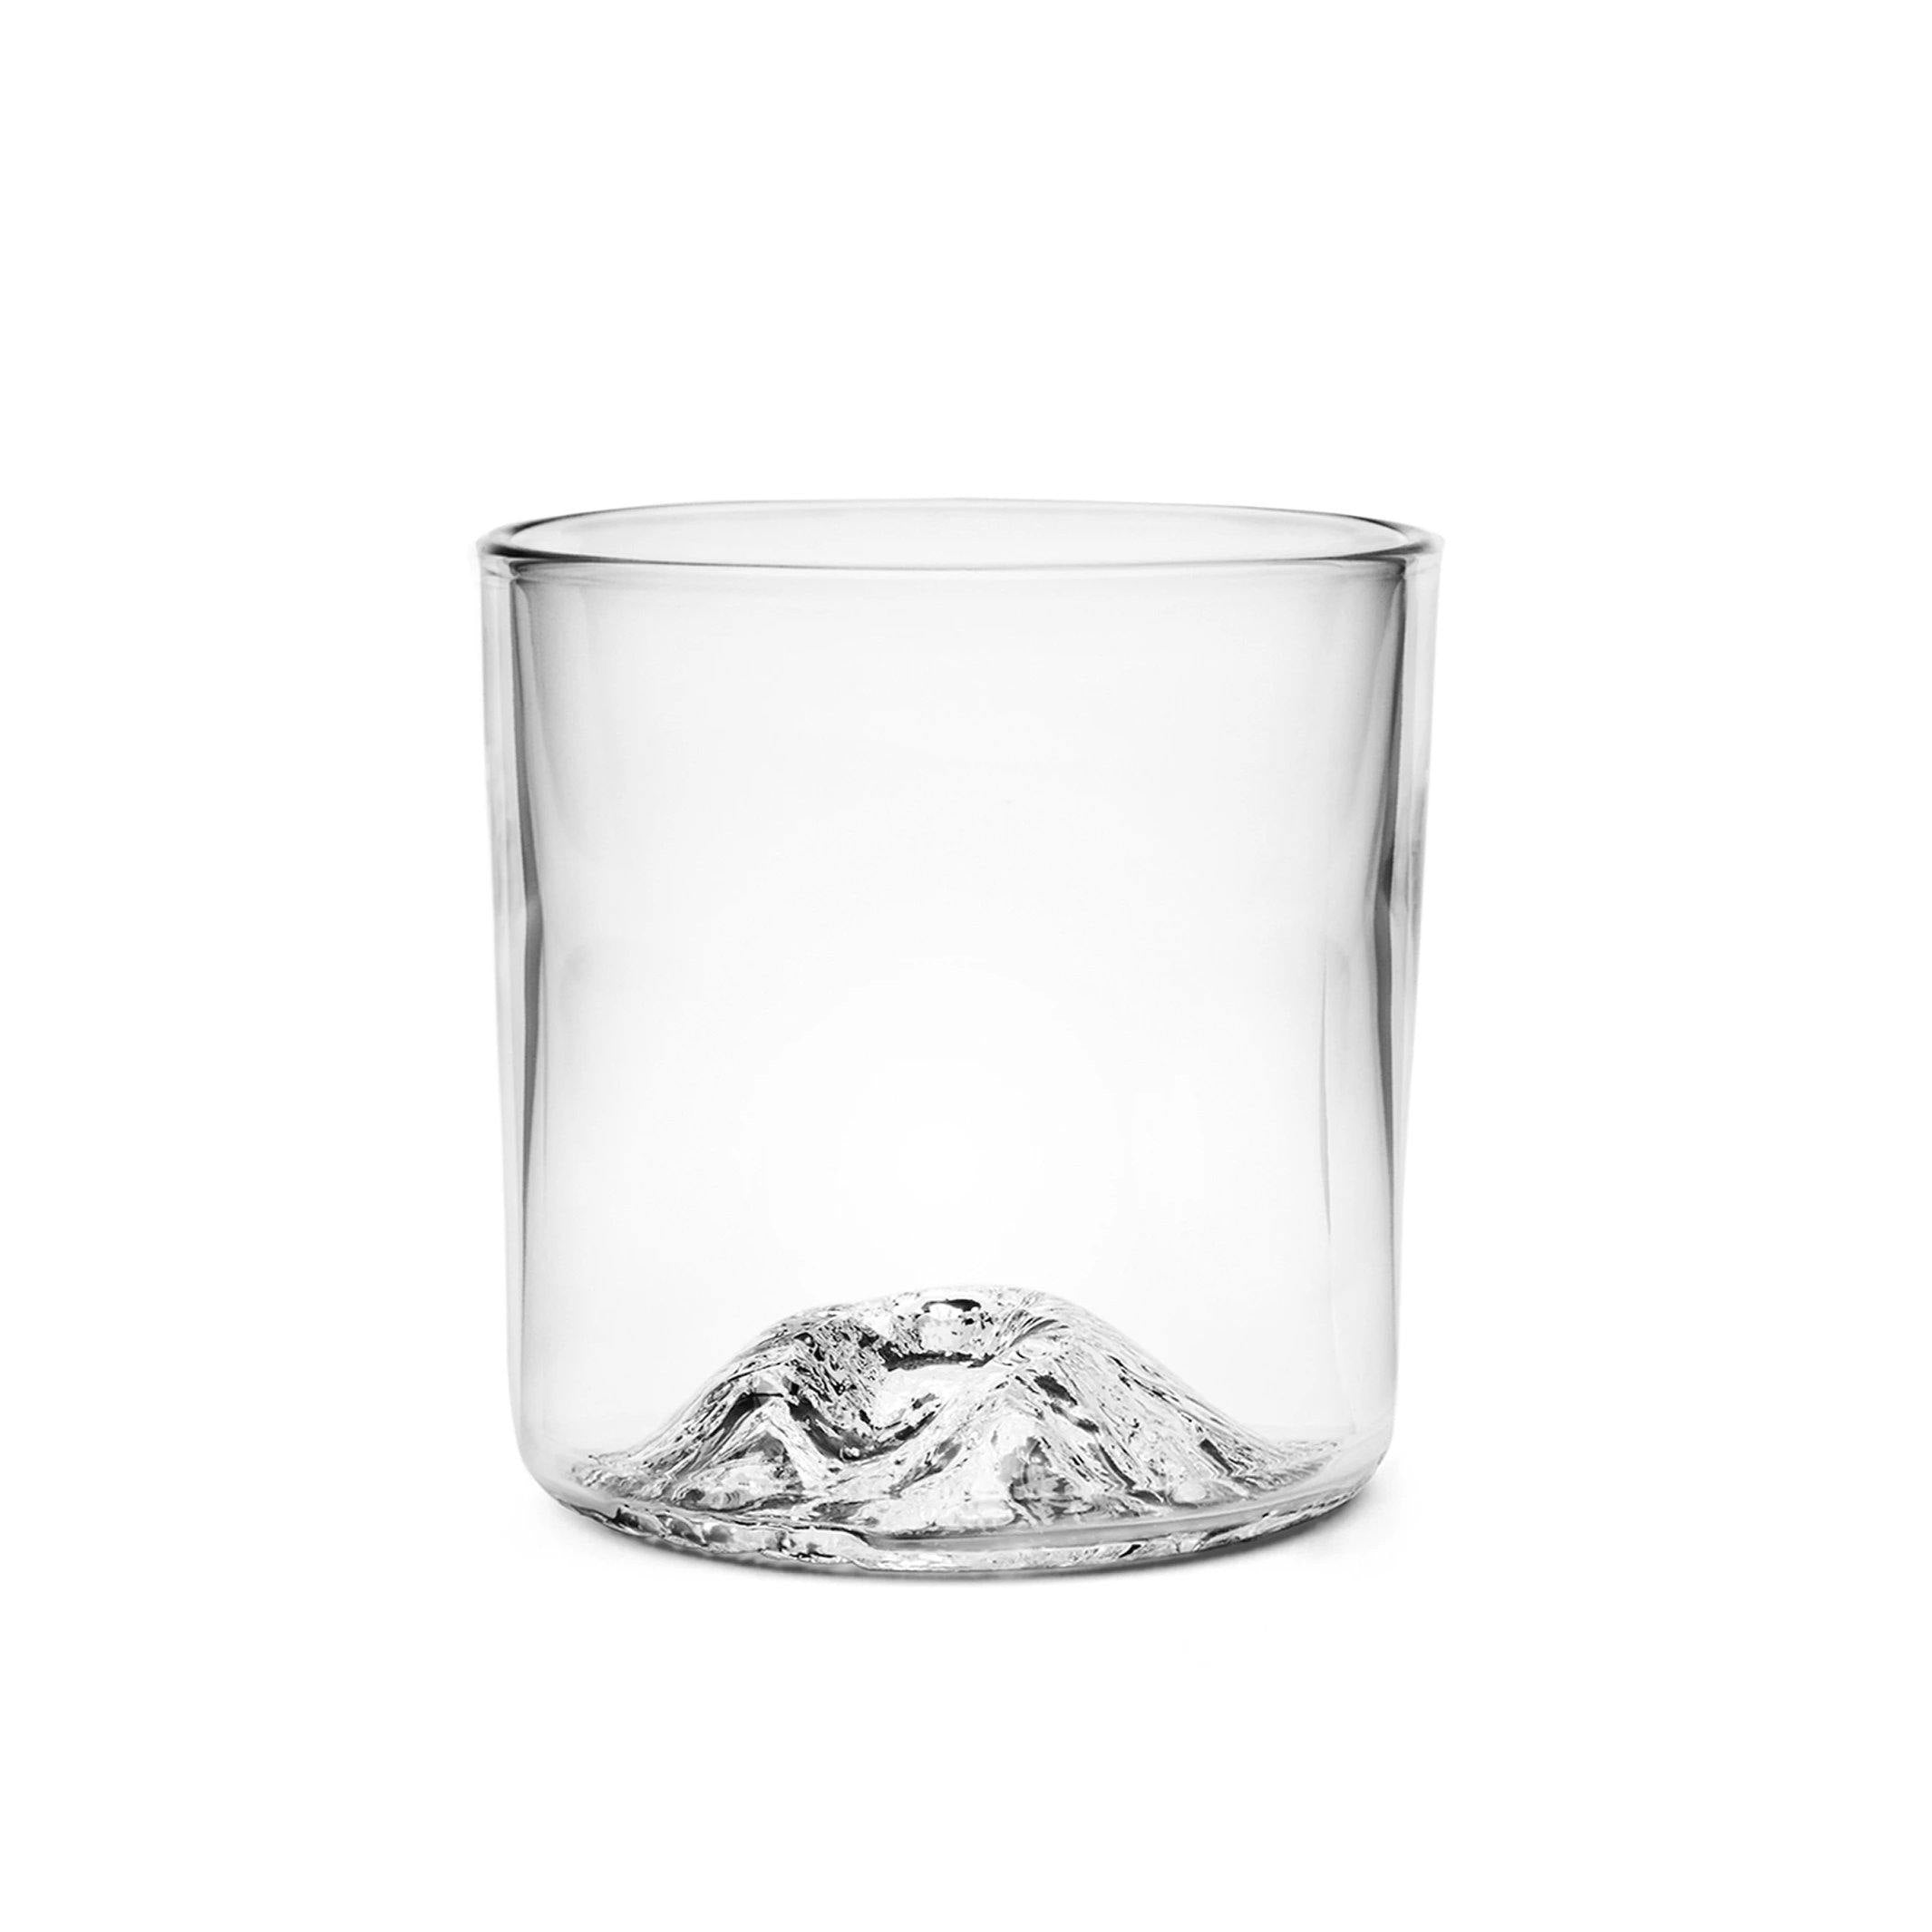 The Mt. St. Helens Tumbler